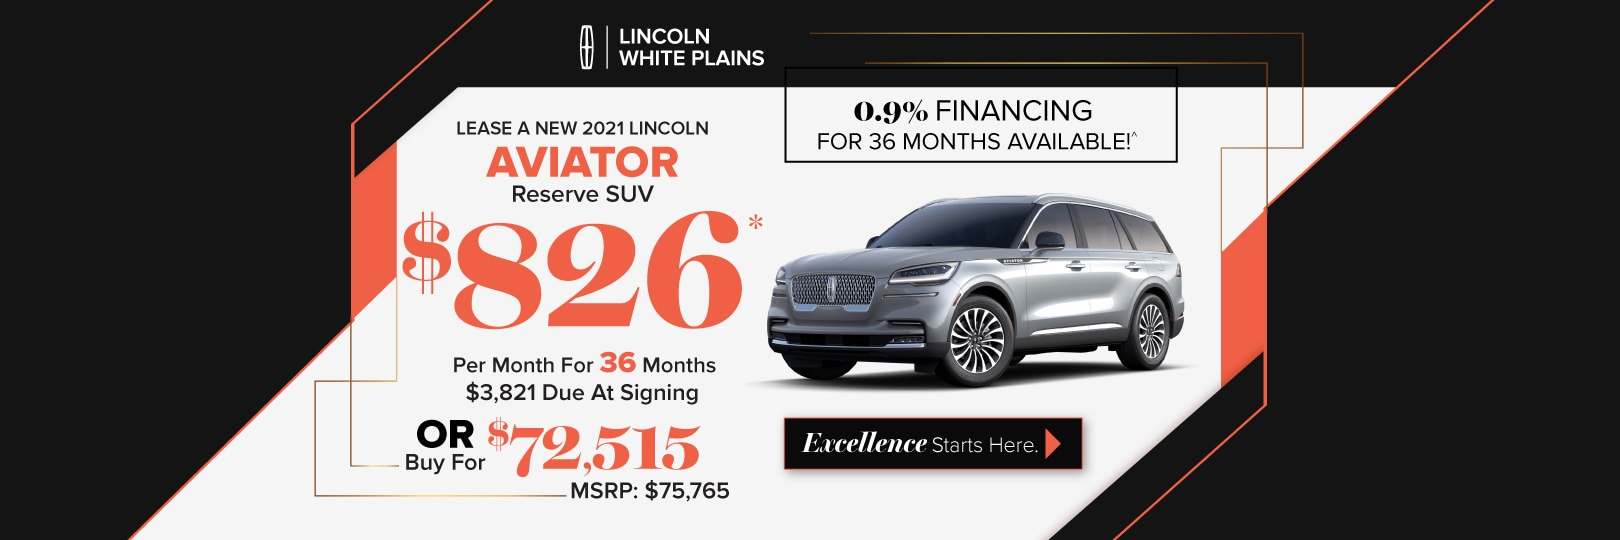 Lincoln Aviator inventory for sale image